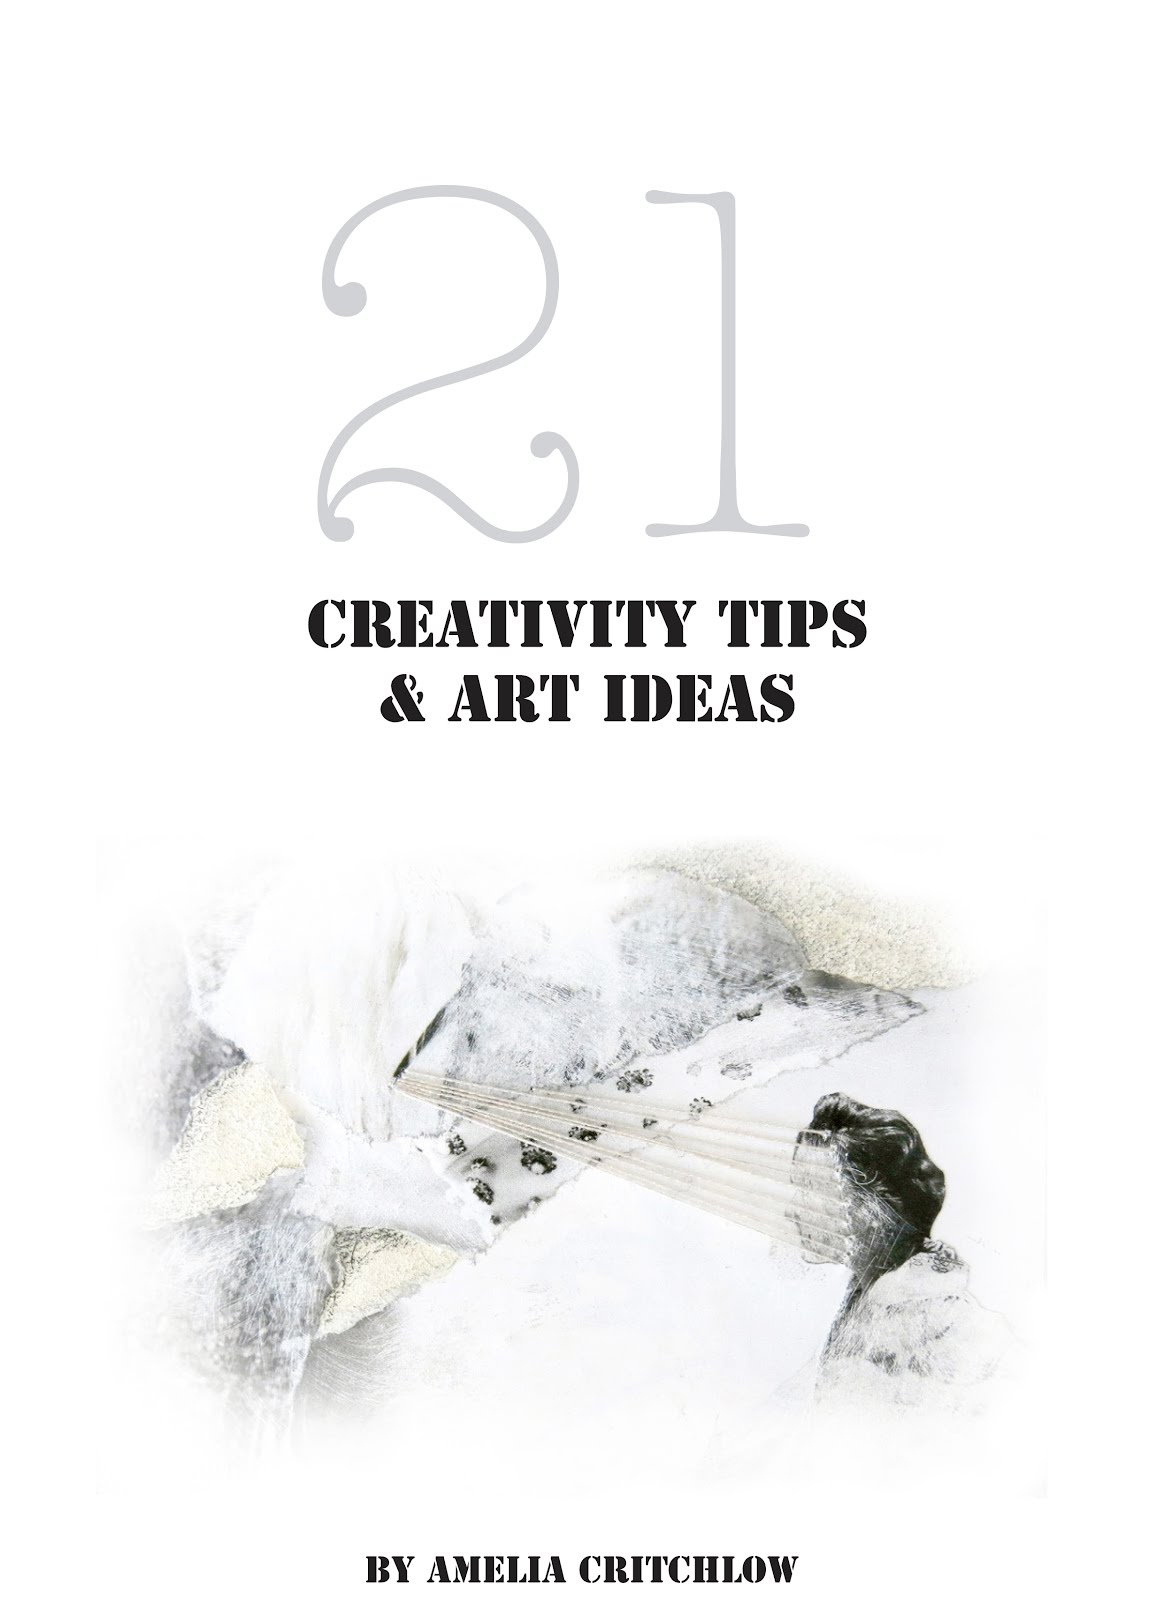 join my e-course mailing list & get 21 creativity tips & art ideas e-book free